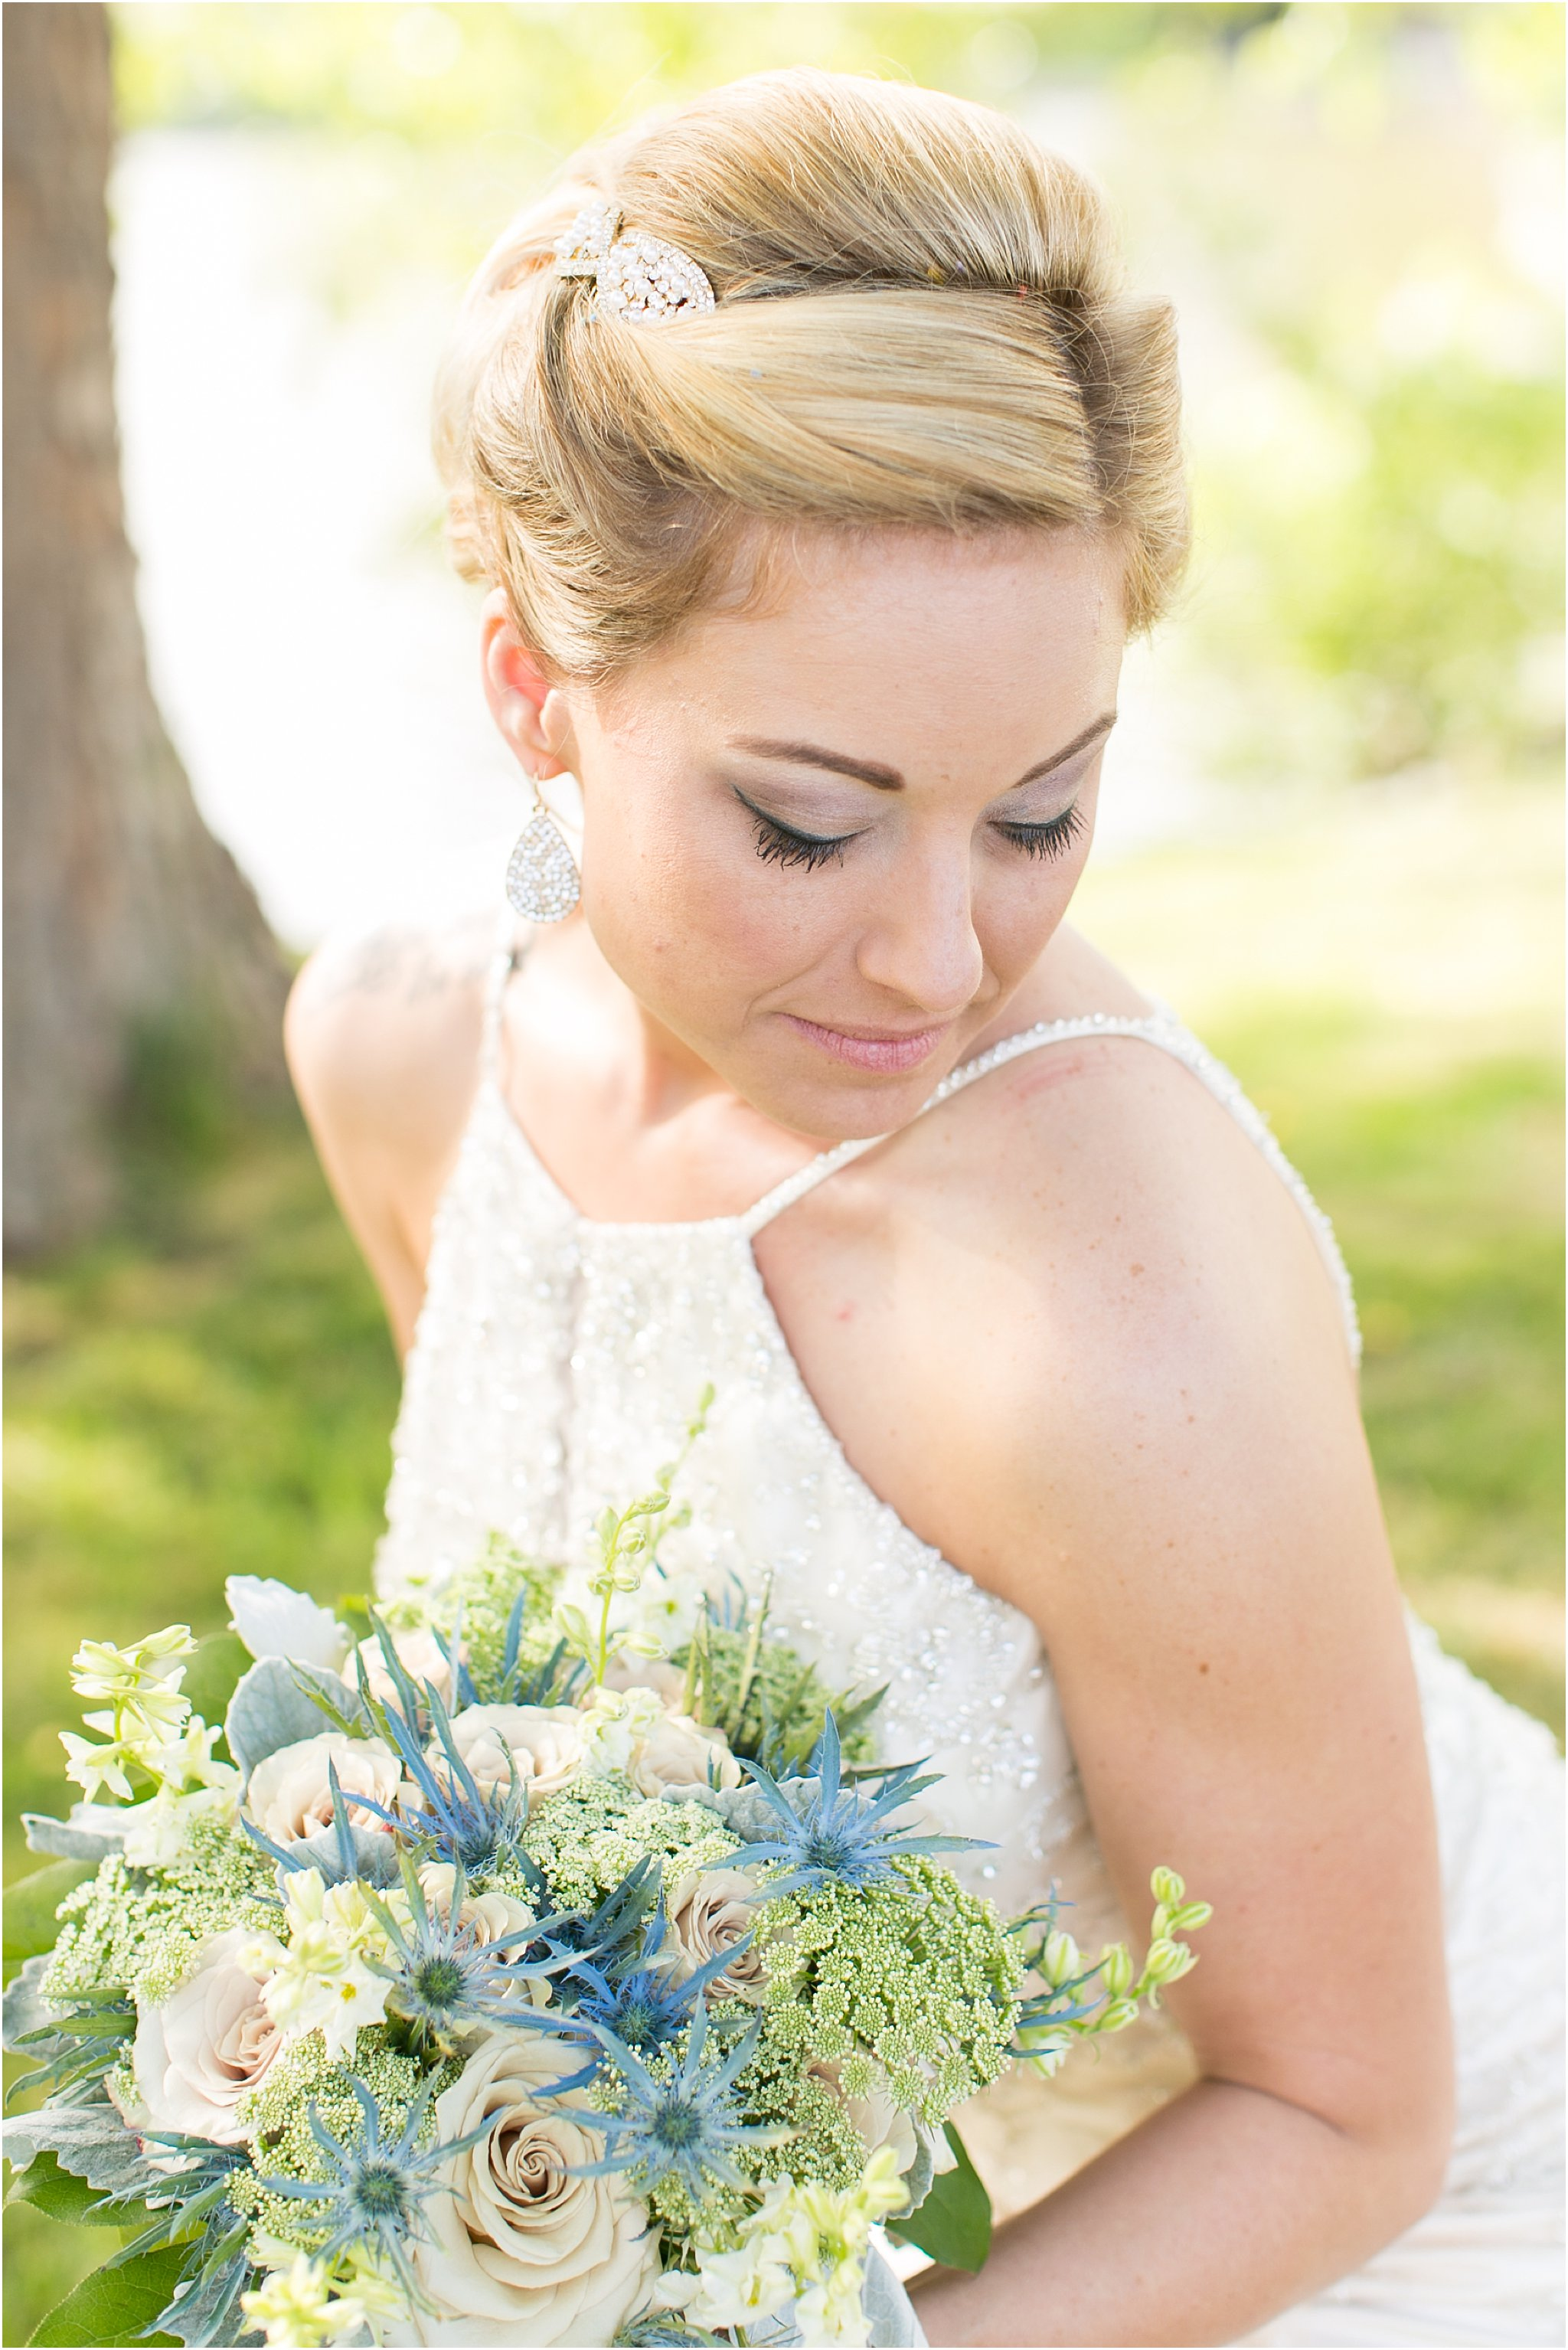 jessica_ryan_photography_virginia_virginiabeachweddingphotographer_studioIdo_backyardwedding_waterfrontwedding_1677